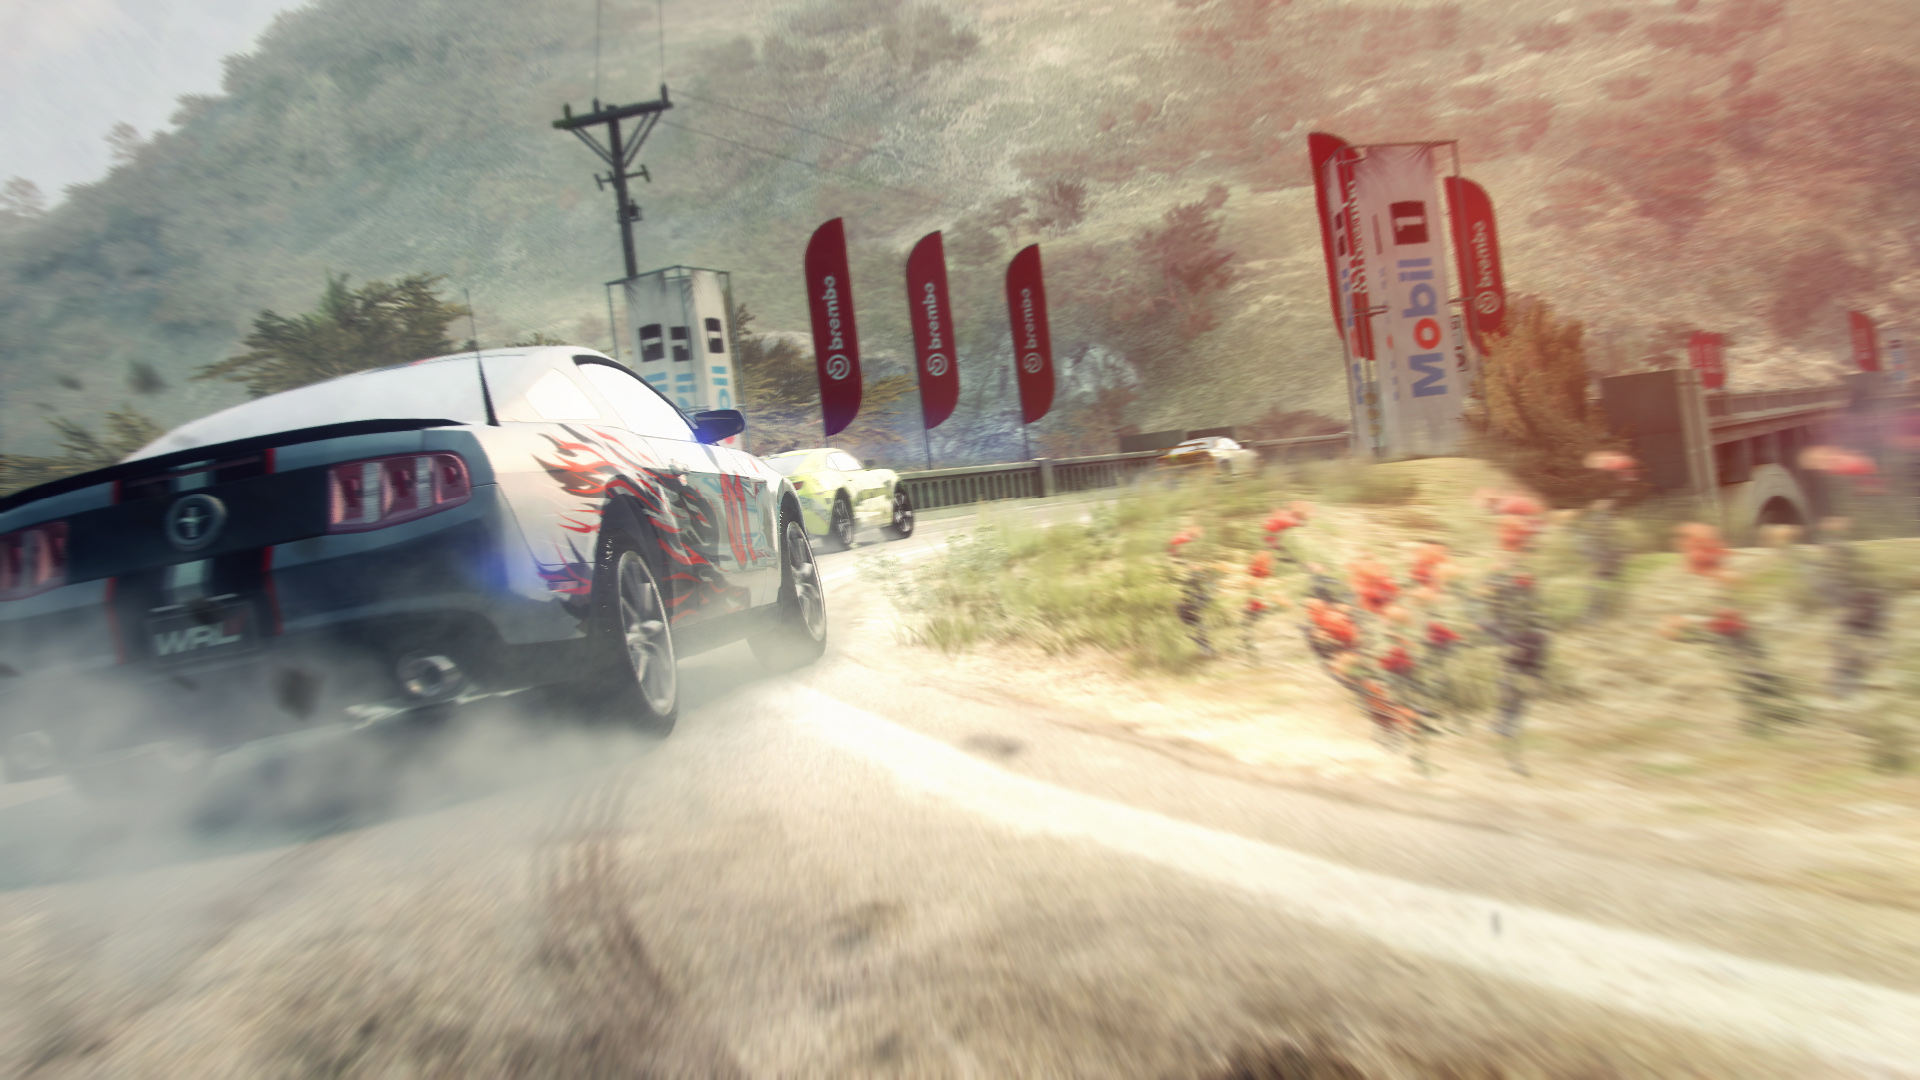 GRID 2 Screenshots, First Gameplay Details Released #23094